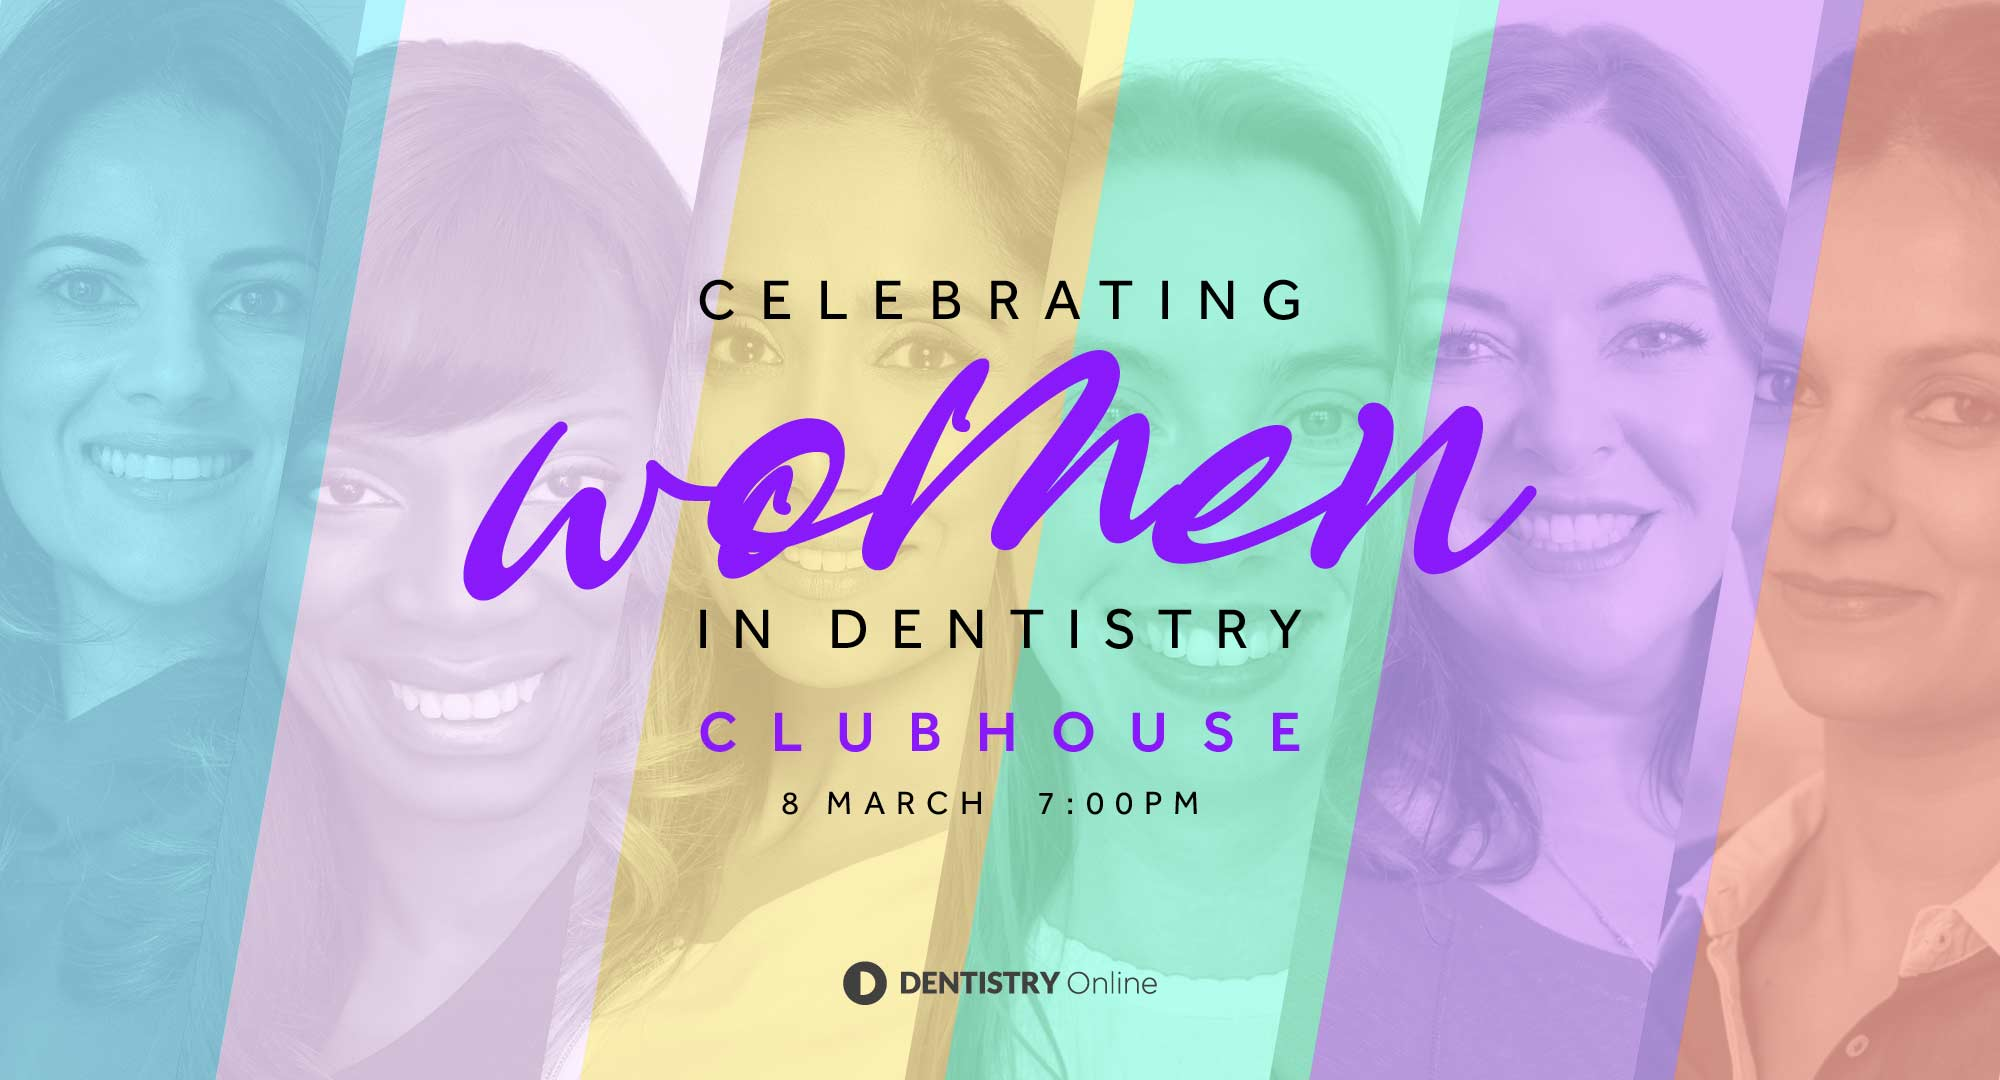 Celebrating women in dentistry – Clubhouse